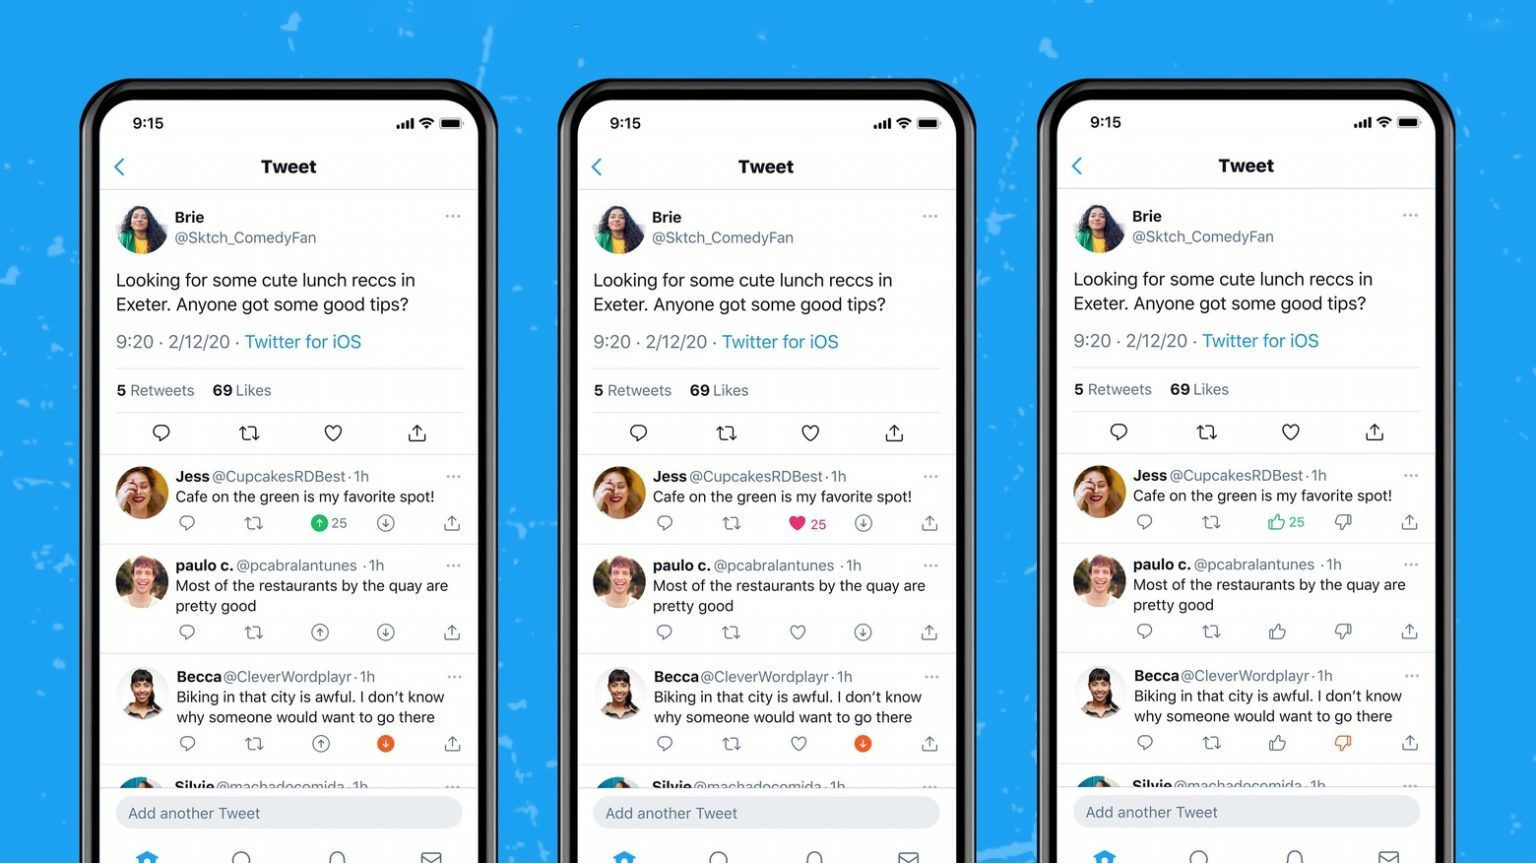 Twitter may have found a way to make itself a bit more savage